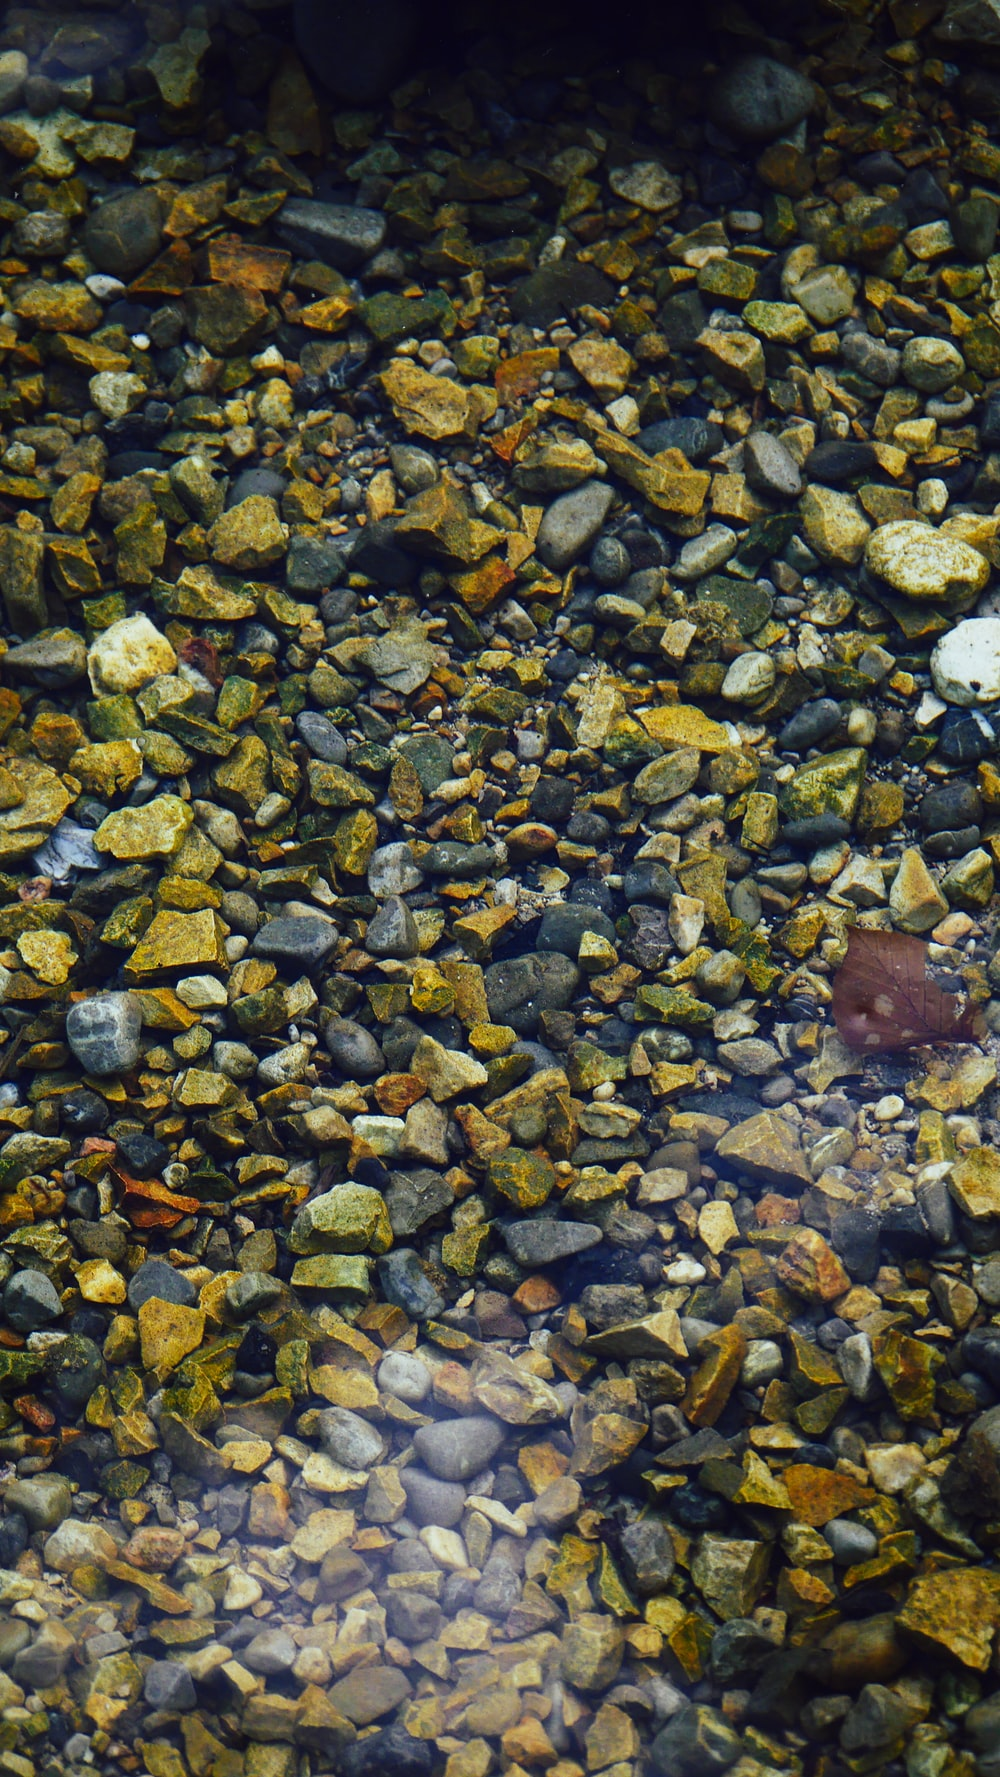 brown and gray stones on body of water